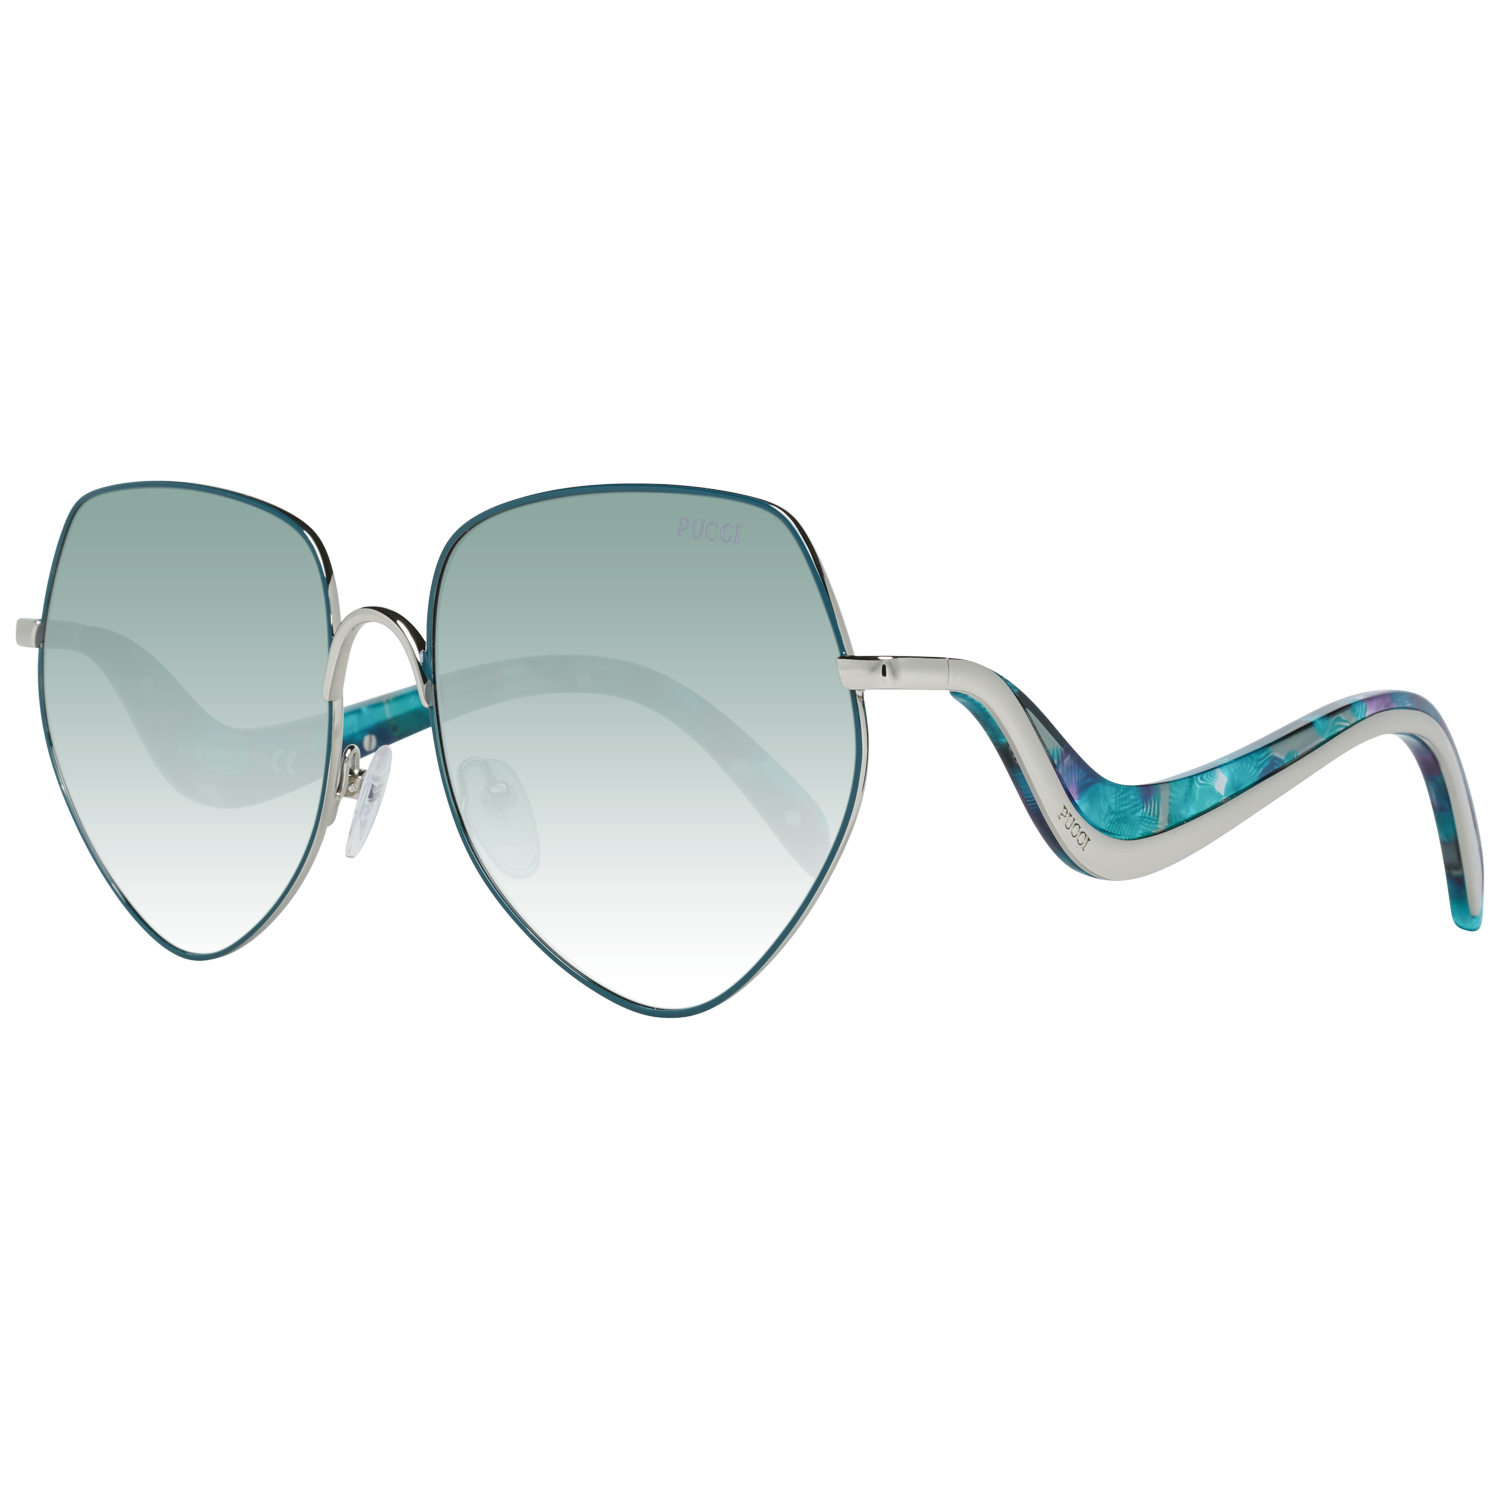 Emilio Pucci Sunglasses EP0119 16B 59 Women Green